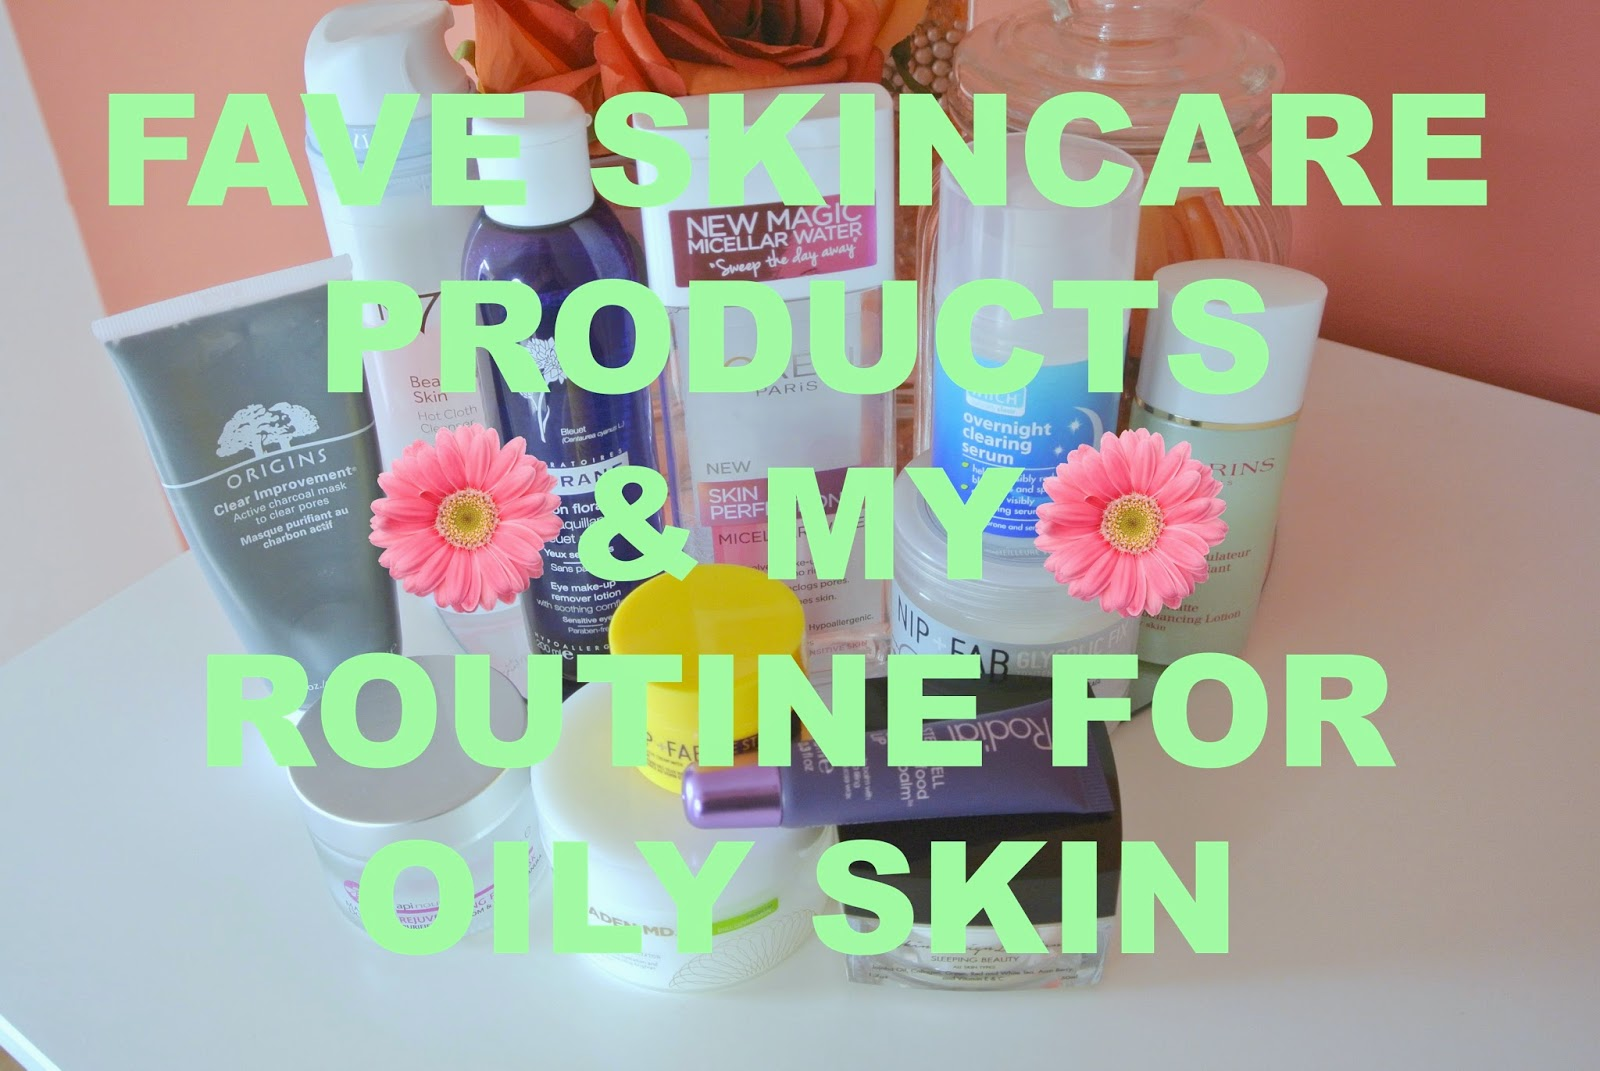 Skincare products for oily skin